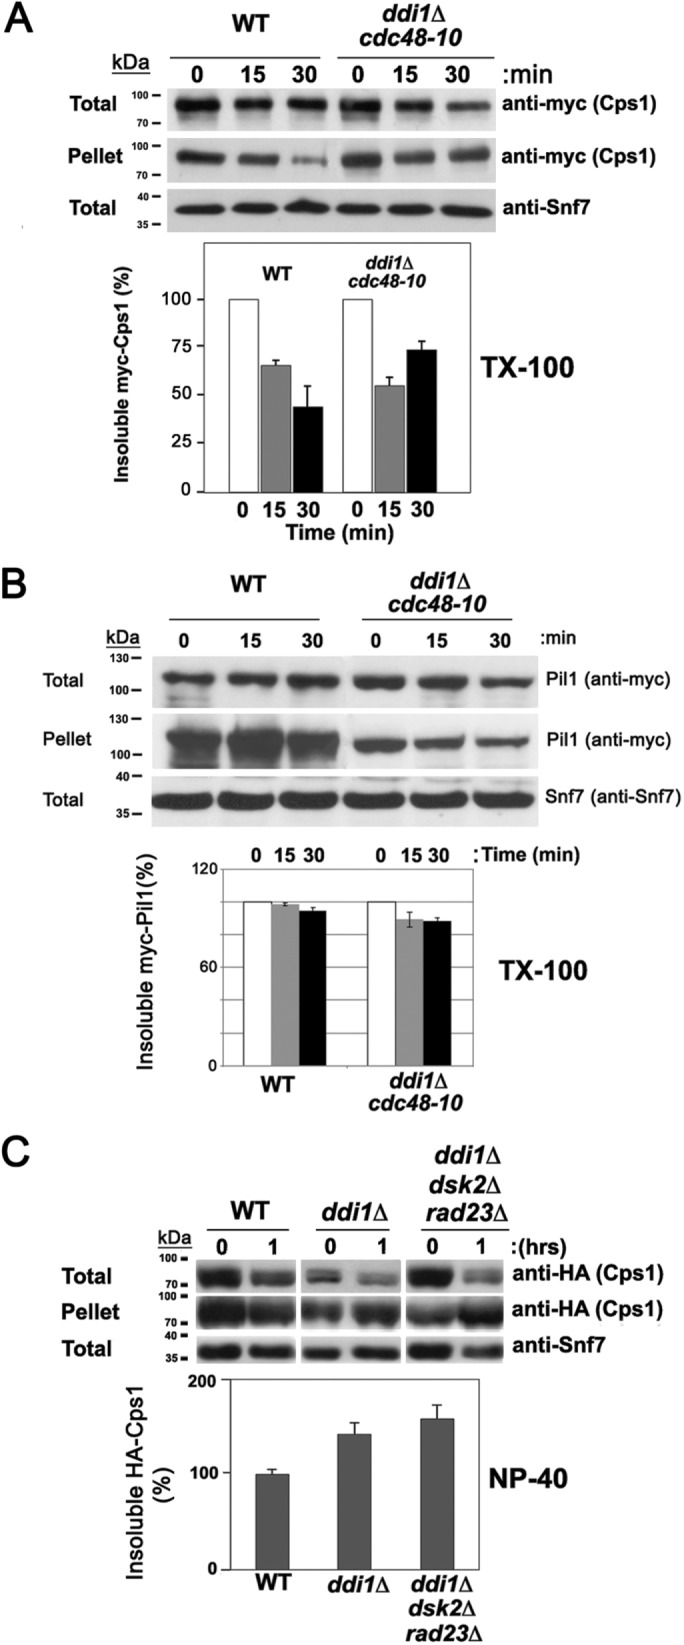 Cdc48 and the ubiquilins reduce the detergent-insoluble fraction of Cps1. (A) The detergent-insoluble fraction of Cps1 decreases substantially in WT but less so cdc48-10 ddi1Δ cells. WT and cdc48-10 ddi1Δ cells expressing endogenous myc-Cps1 from its genomic locus were subjected to a cycloheximide (CHX)-chase degradation/sedimentation assay to resolve the amount of Triton X-100 detergent-insoluble Cps1 in the pellet fraction, as described under Materials and Methods . Samples of were removed after 0, 15, and 30 min of CHX treatment before processing to determine the relative amounts of myc-Cps1 in the total, pellet, and supernatant (see Supplemental Figure S6A) fractions by Western analysis with anti-myc antibodies. Anti-Snf7 antibodies were employed to assess the levels of total protein loaded and in subsequent quantitative analyses used for normalization of the results (unlike actin, Snf7 is not degraded upon CHX treatment). The amount of insoluble Cps1 in the pellet was normalized to the loading control, after which the percentage was calculated relative to the amount at 0 h. A representative experiment is shown in the top panel. A histogram of the quantification of three repetitive experiments is shown beneath. kDa = kilodaltons. (B) The detergent-insoluble fraction of eisosome protein, Pil1, does not change in cdc48-10 ddi1Δ cells. WT and cdc48-10 ddi1Δ yeast expressing myc-Pil1 from its genomic locus were subjected to the cycloheximide-chase degradation/sedimentation assay in A to resolve the amount of Triton X-100 detergent-insoluble Pil1 by Western analysis using anti-myc antibodies as in A. A histogram of showing the results of three repetitive experiments is shown beneath. (C) The level of <t>NP-40</t> detergent-insoluble Cps1 increases in ddi1Δ and ddi1Δ dsk2Δ rad23Δ cells. WT control cells (W303), ddi1Δ , and ddi1Δ dsk2Δ rad23Δ cells expressing HA-Cps1 were subjected to the same procedure as in A, and the percentage of insoluble Cps1 in the pellet fracti